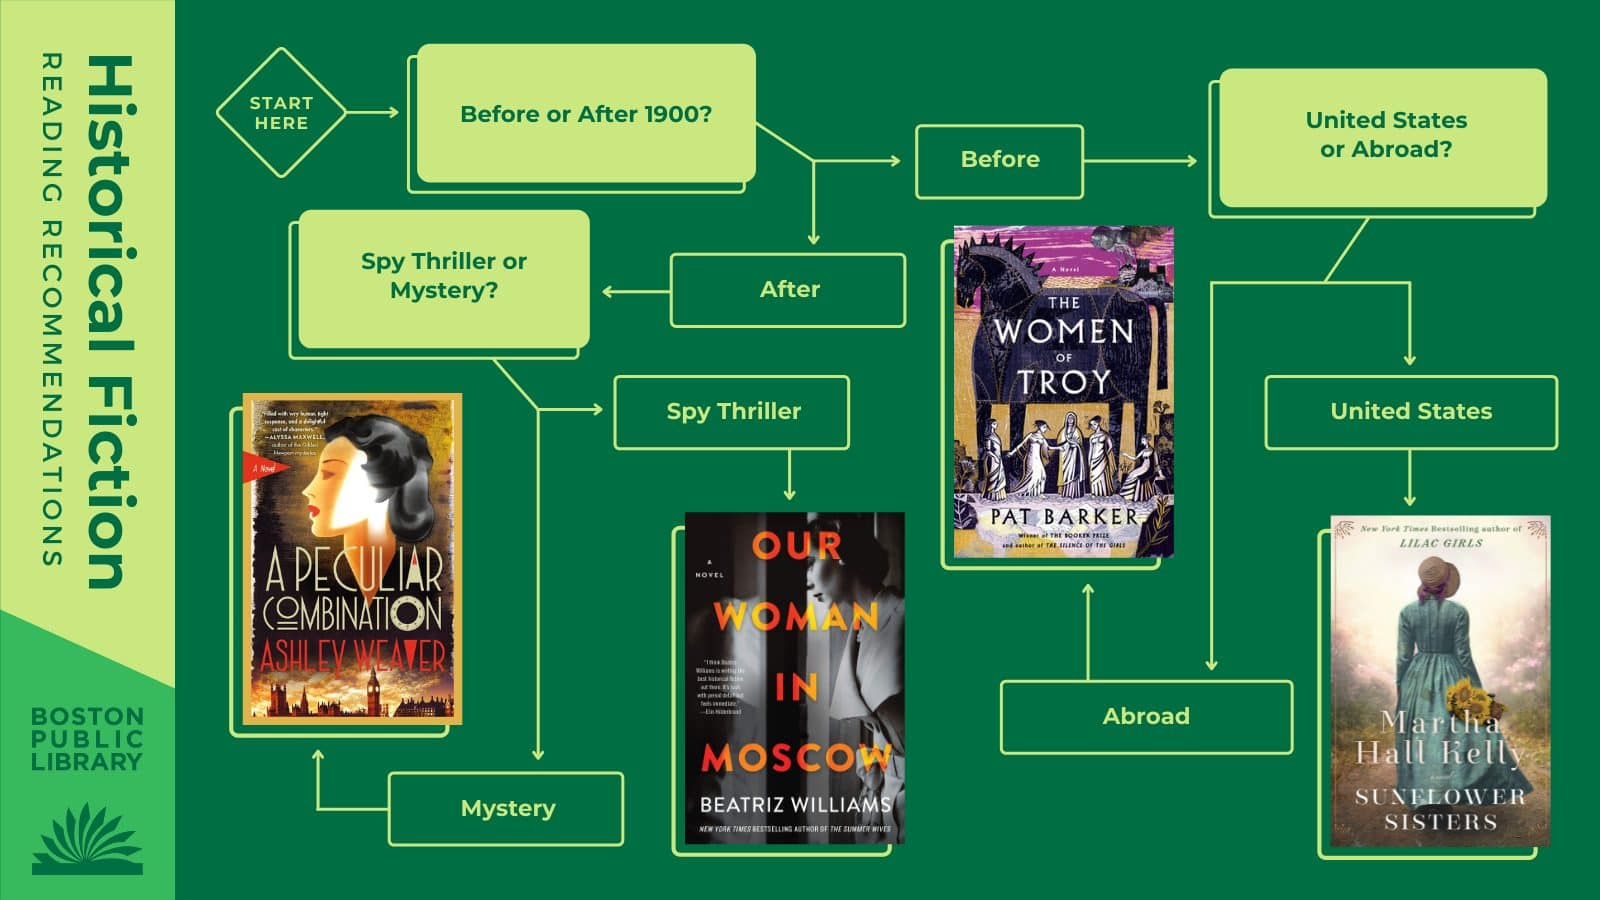 Q1: Before or after 1900?Before →Q2: In the United States or Abroad?United States →Sunflower Sisters by Martha Hall Kelly → Abroad:Women of Troy by Pat Barker | After 1900 → Q3: Spy Thriller or Mystery?Spy Thriller → Our Woman in Moscow by Beatriz Williams → Mystery:A Peculiar Combination by Ashley Weaver